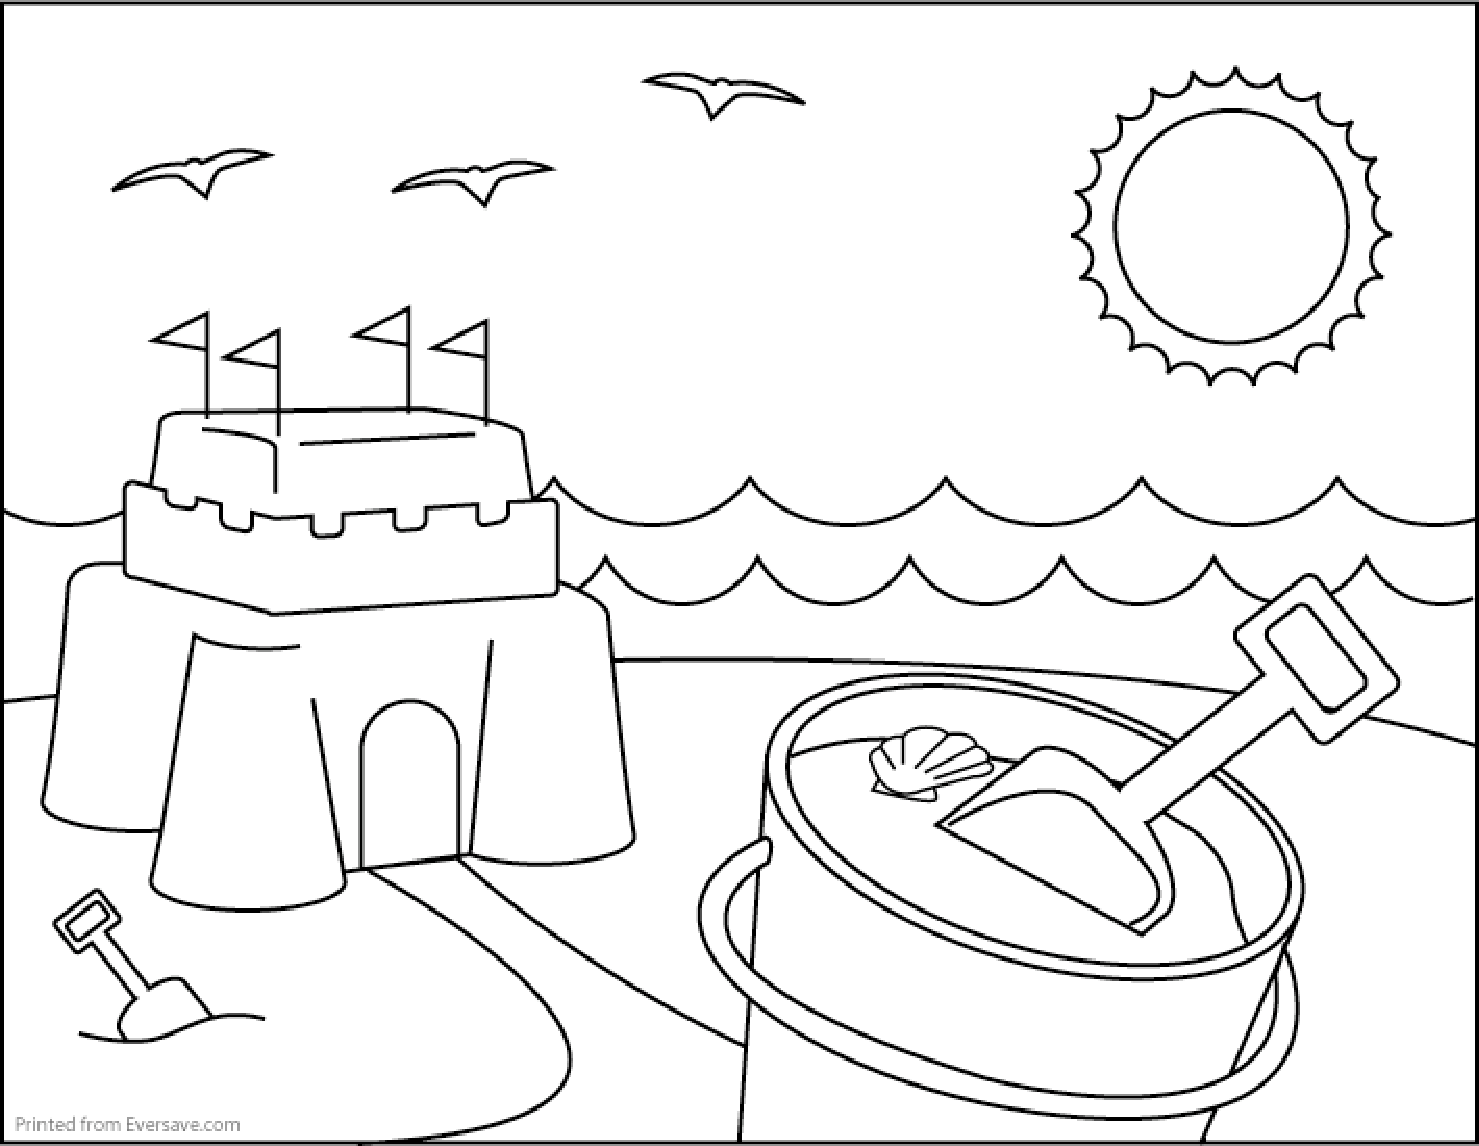 Inside Out Coloring Pages - GetColoringPages.com | 1146x1479